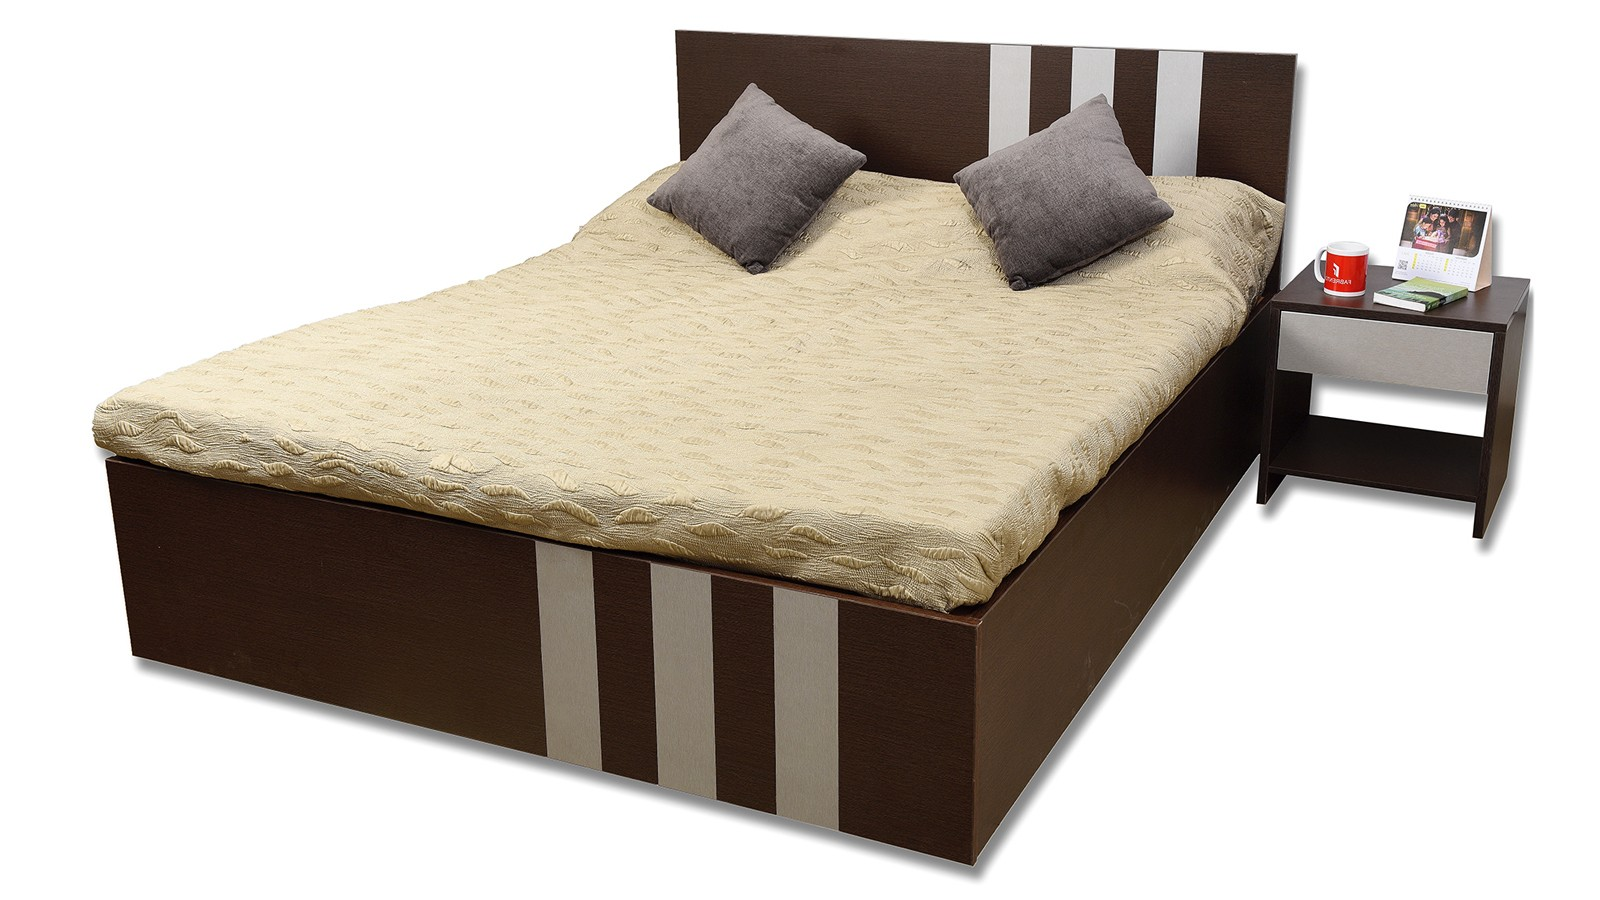 Avena Queen Size Storage Bed with Mattress and Side Table 1600x900